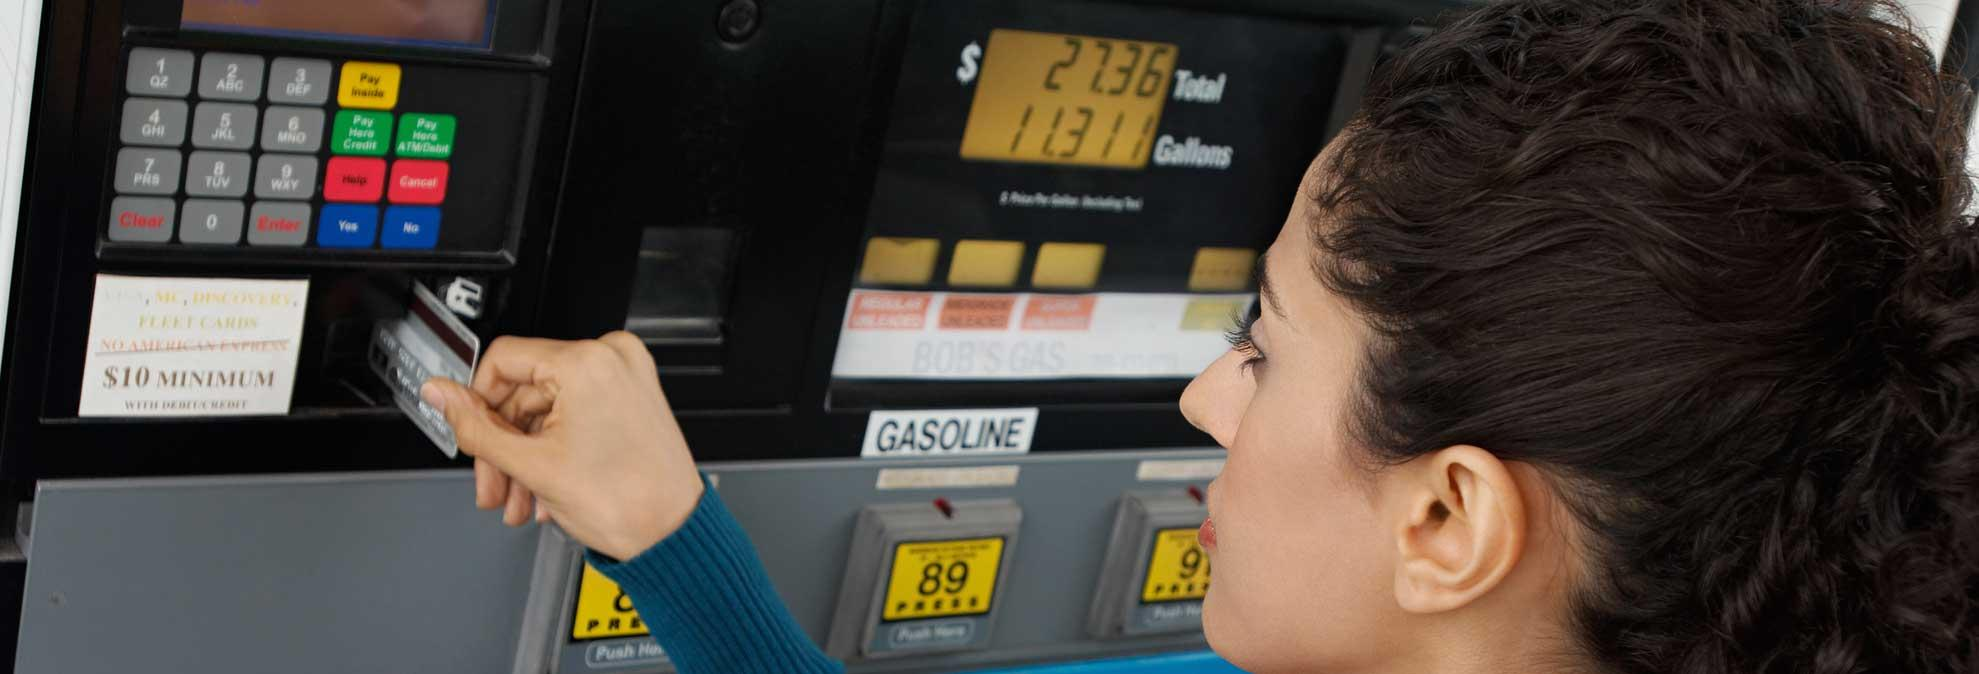 Stricter Fuel Economy Standards Proven to Save Consumers Money